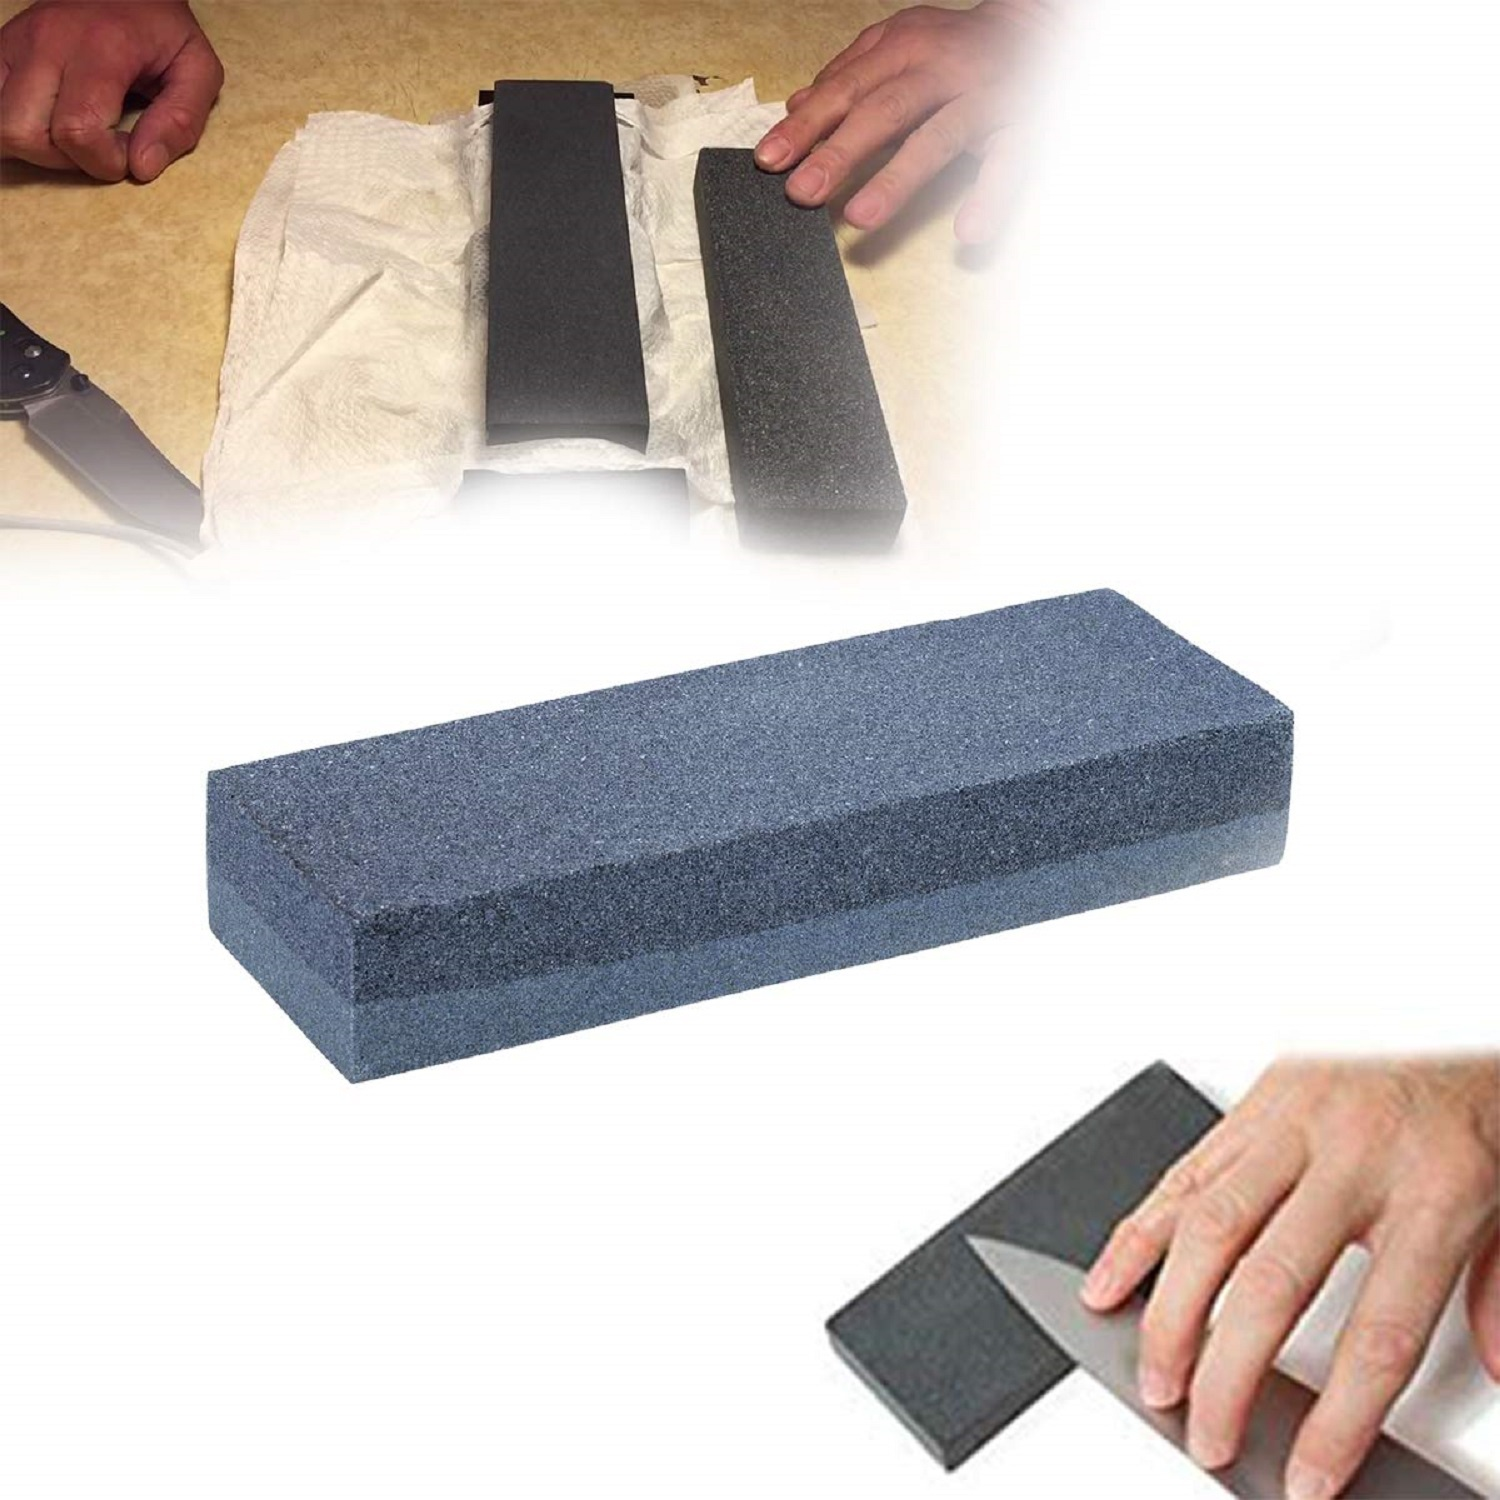 Silicone Carbide Stone For Sharpening Knives